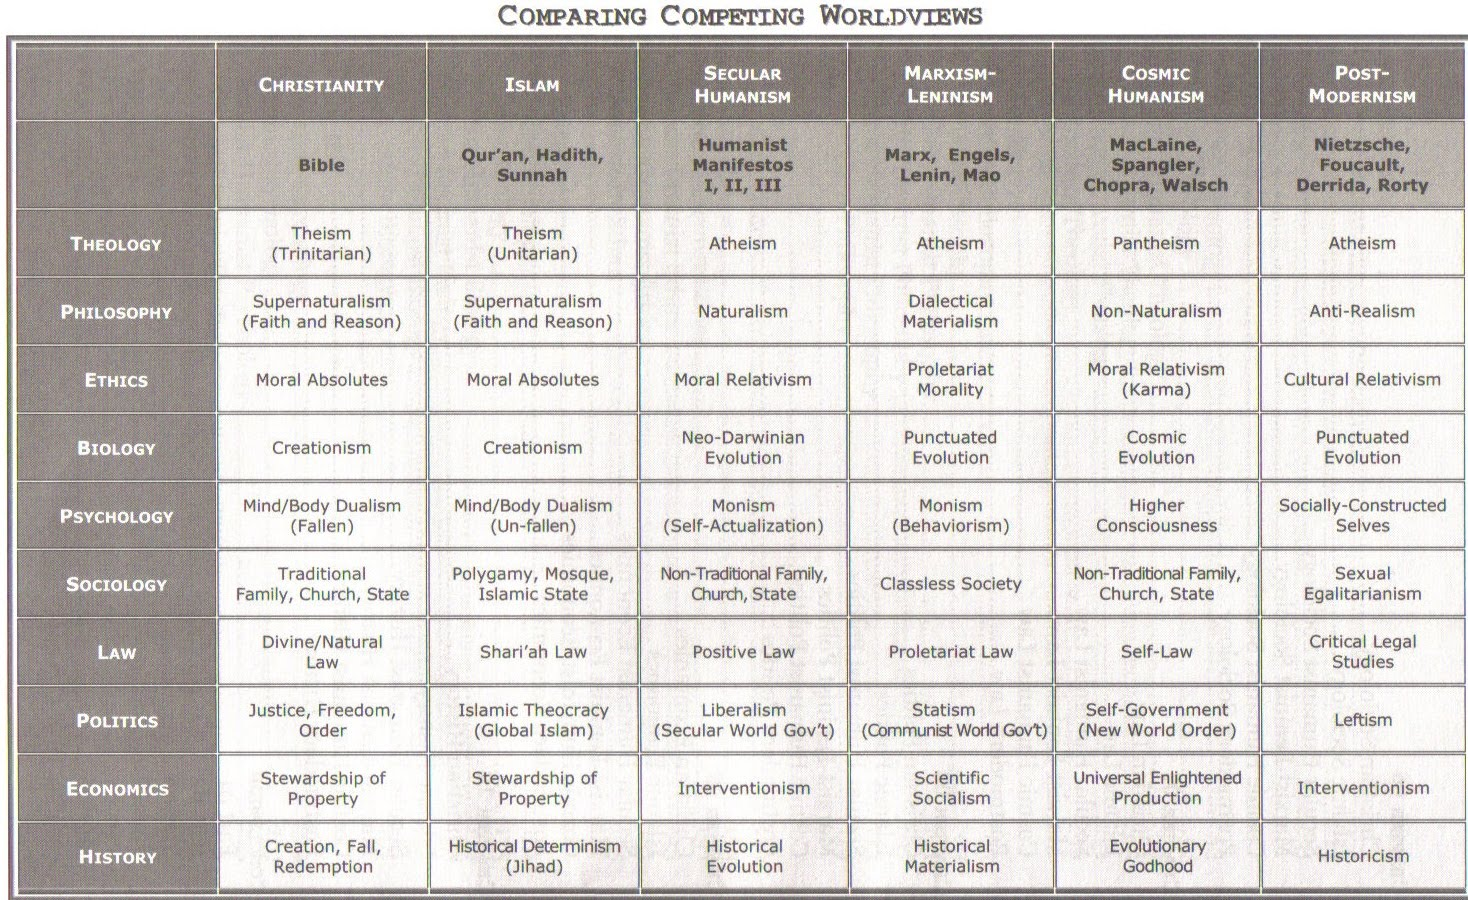 a comparison of the worldviews of